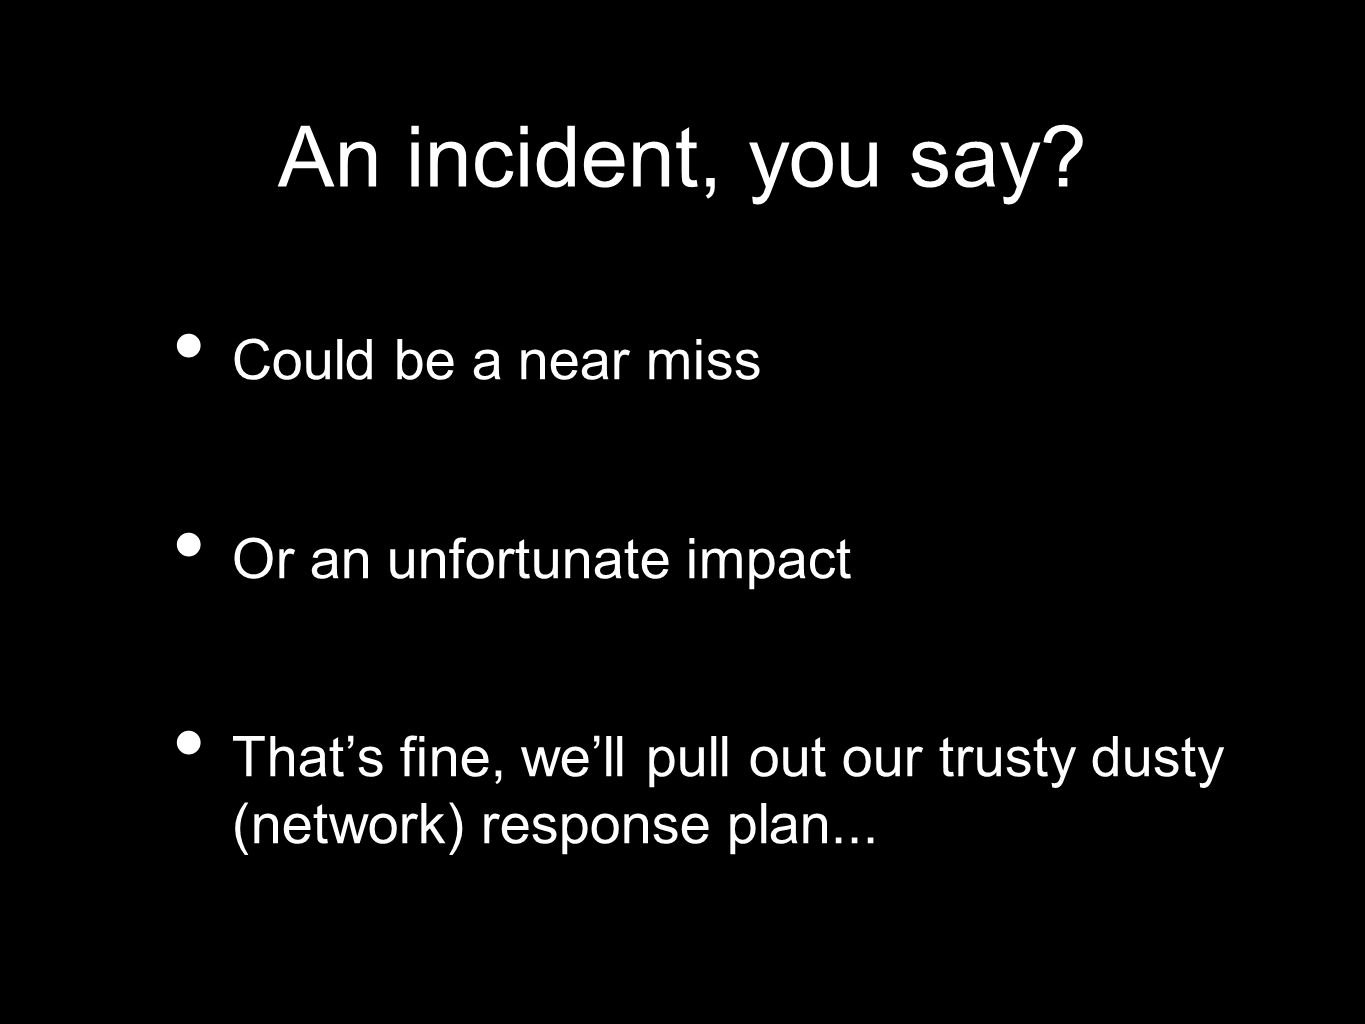 An incident, you say.